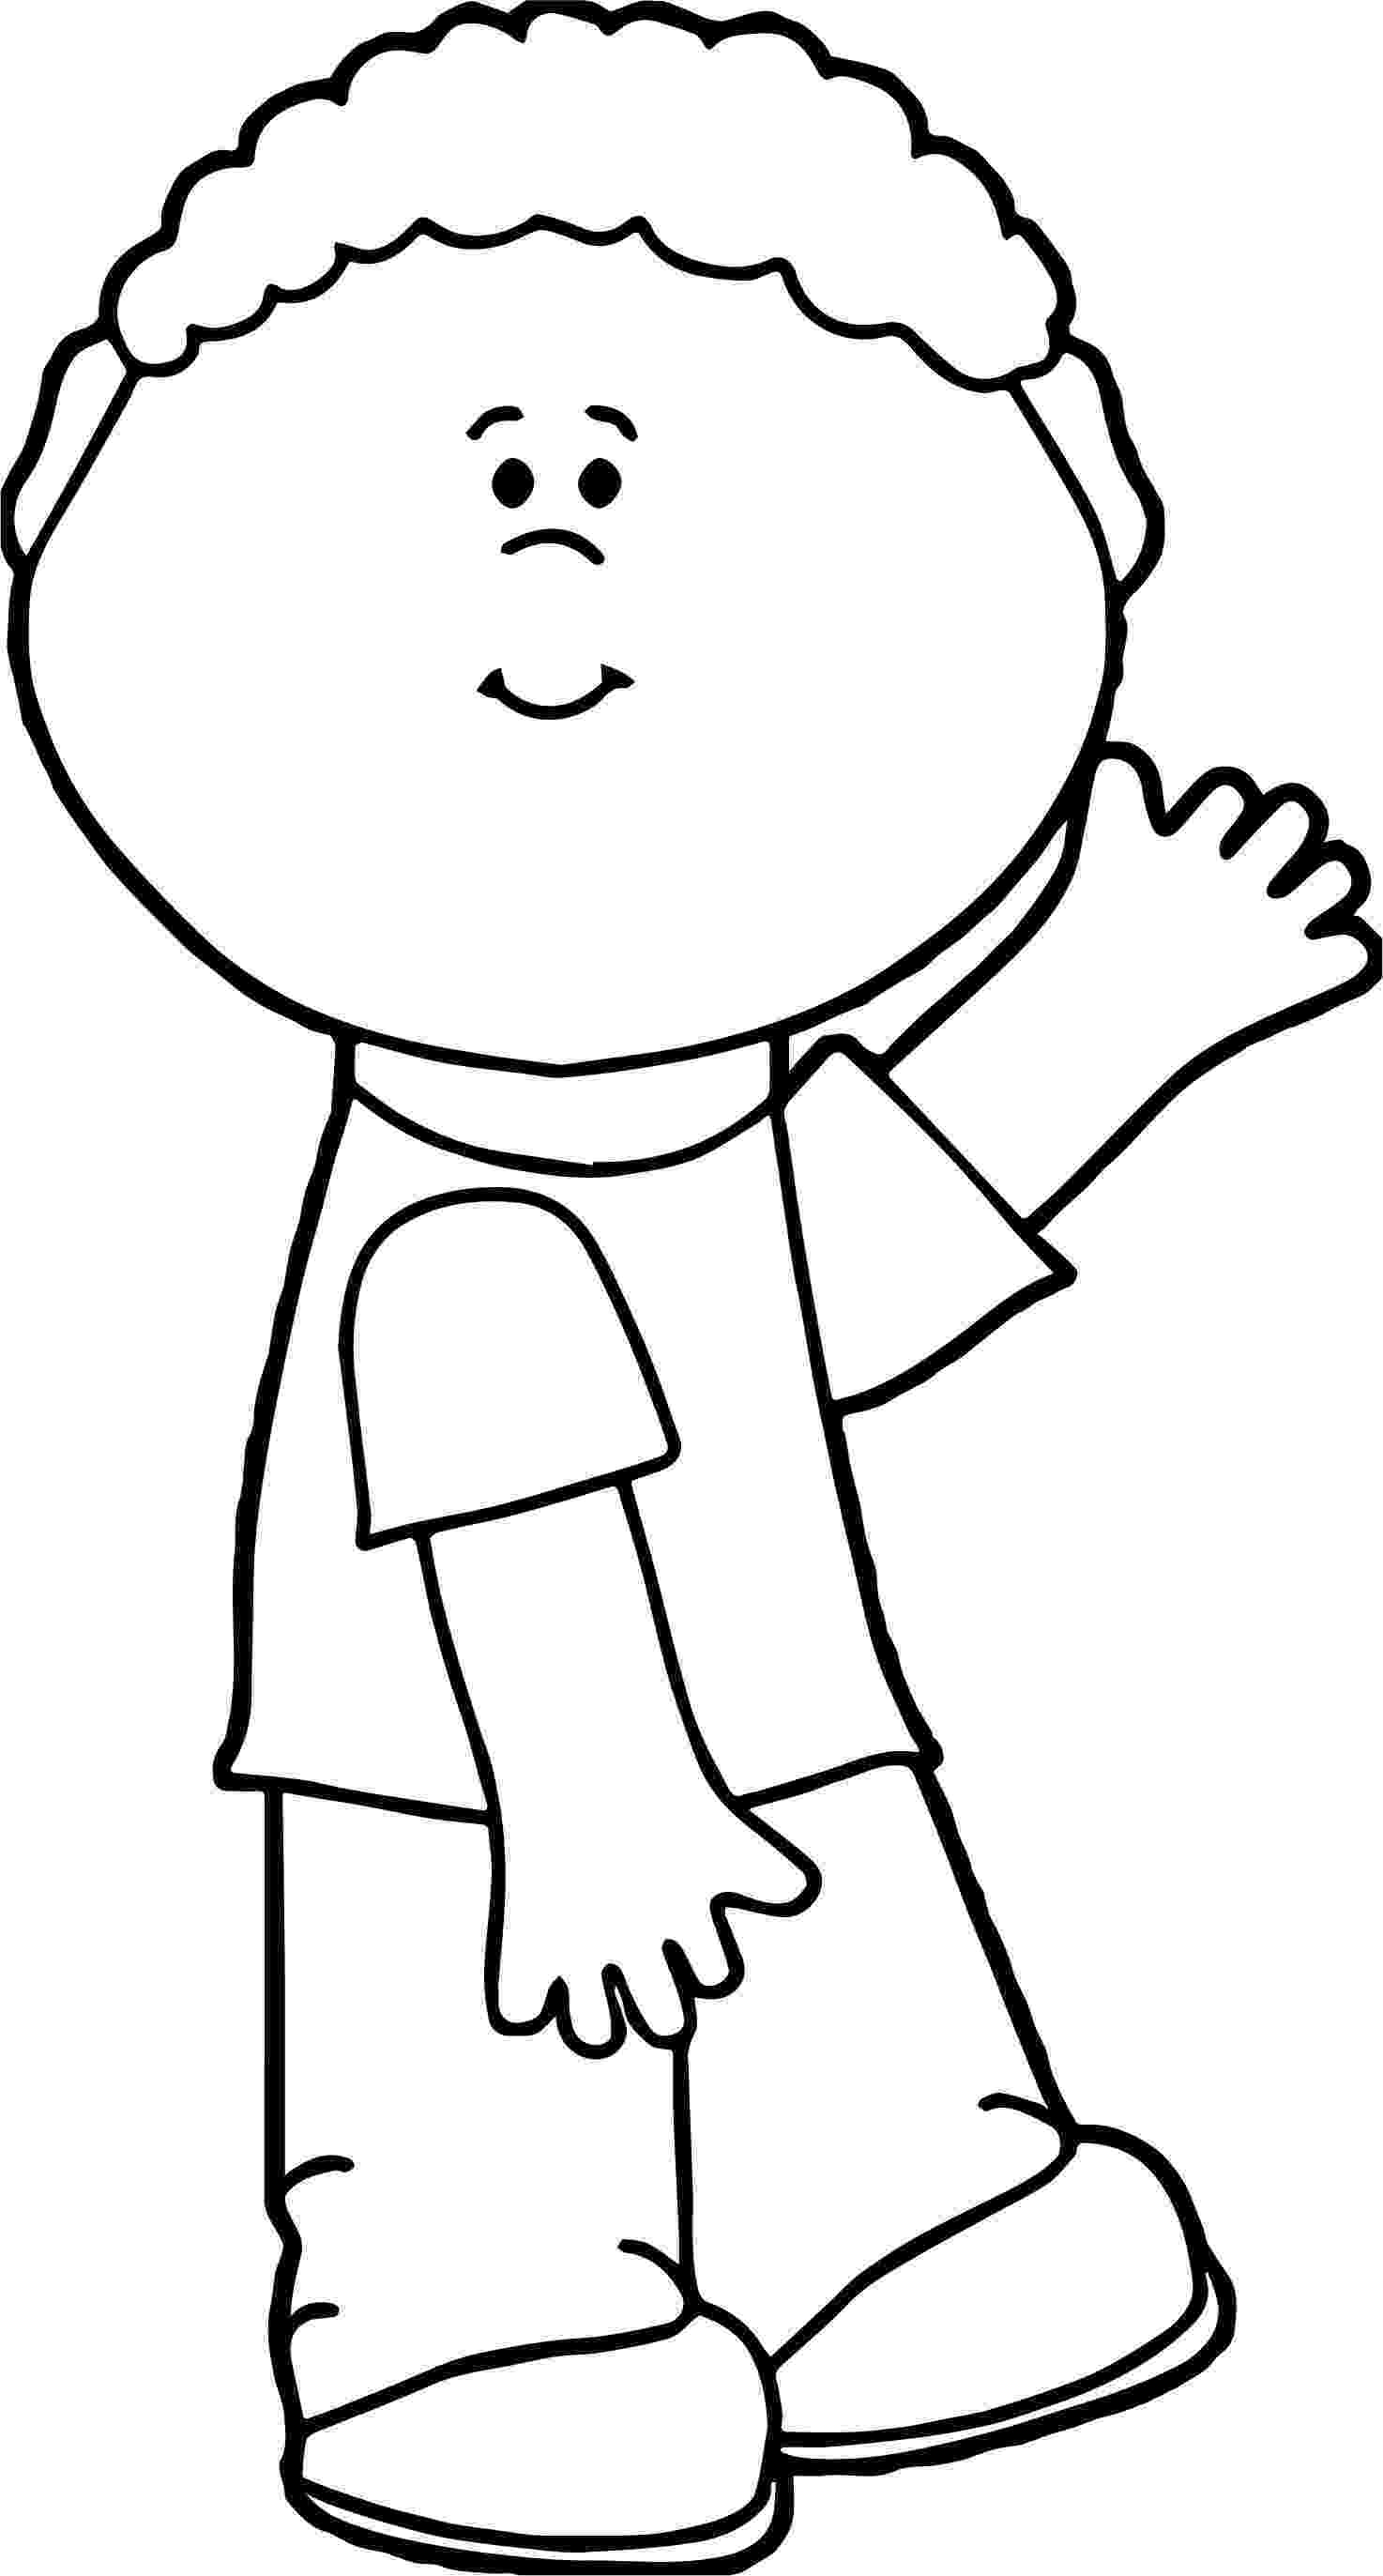 picture of a boy to color coloring page boy39s face face outline coloring pages boy picture of color a to